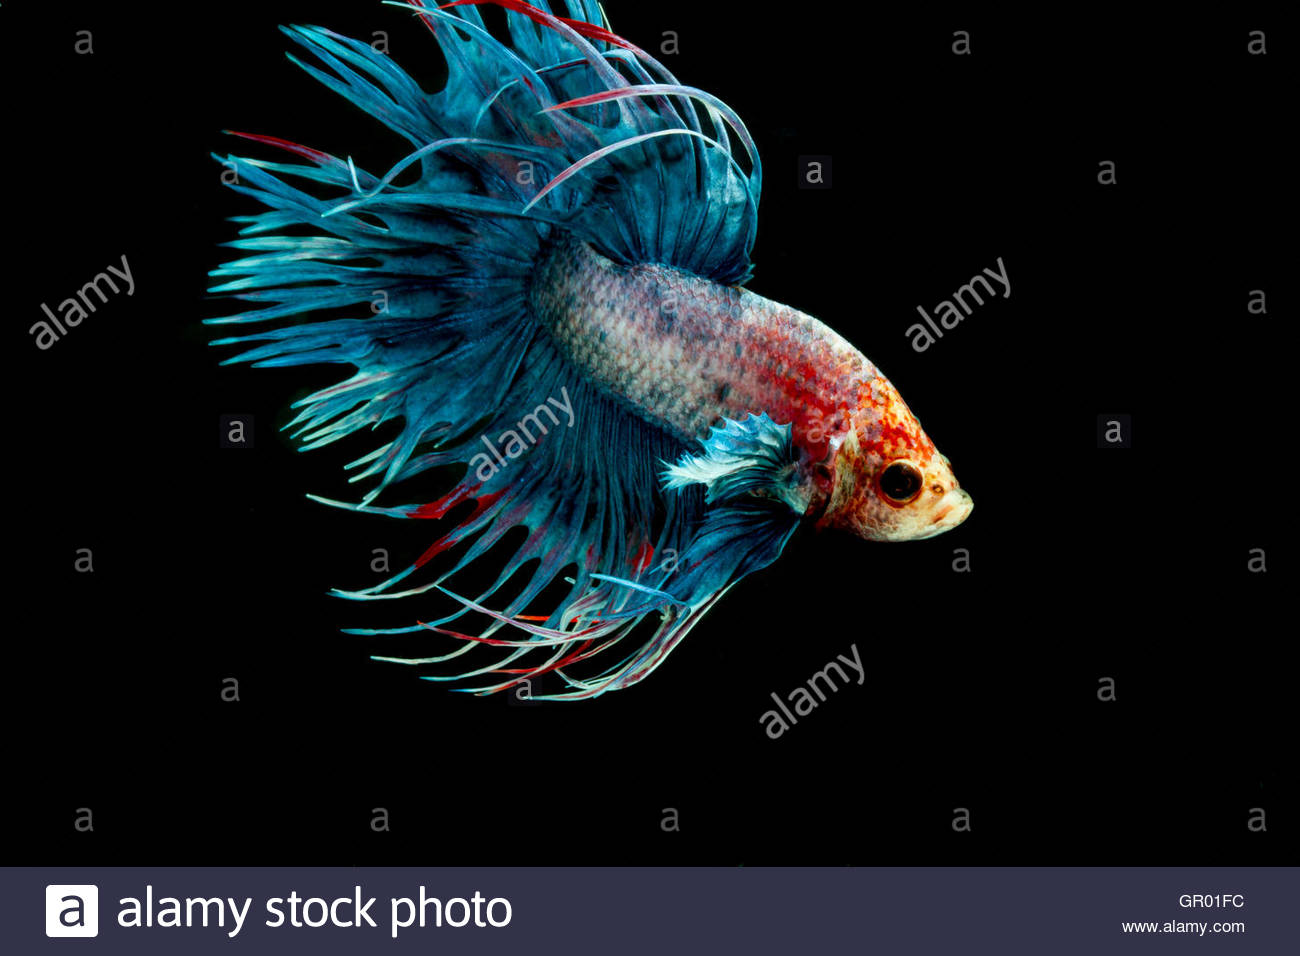 Betta fish Crown tail or Siamese fighting fish on black background - Stock Image